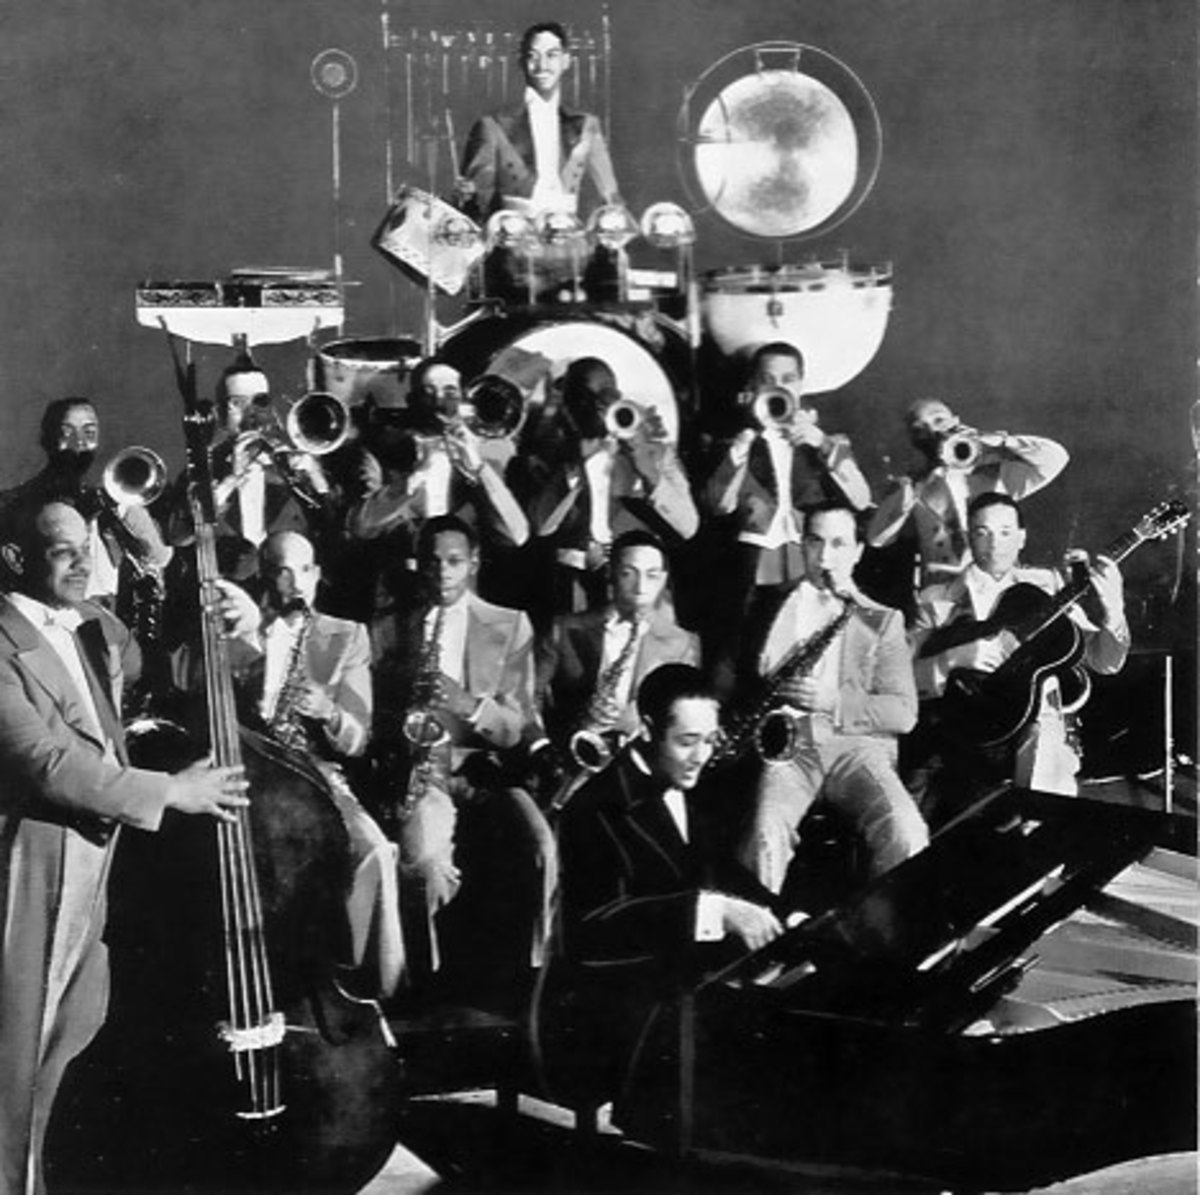 Duke Ellington and his famous Big Band/or Orchestra